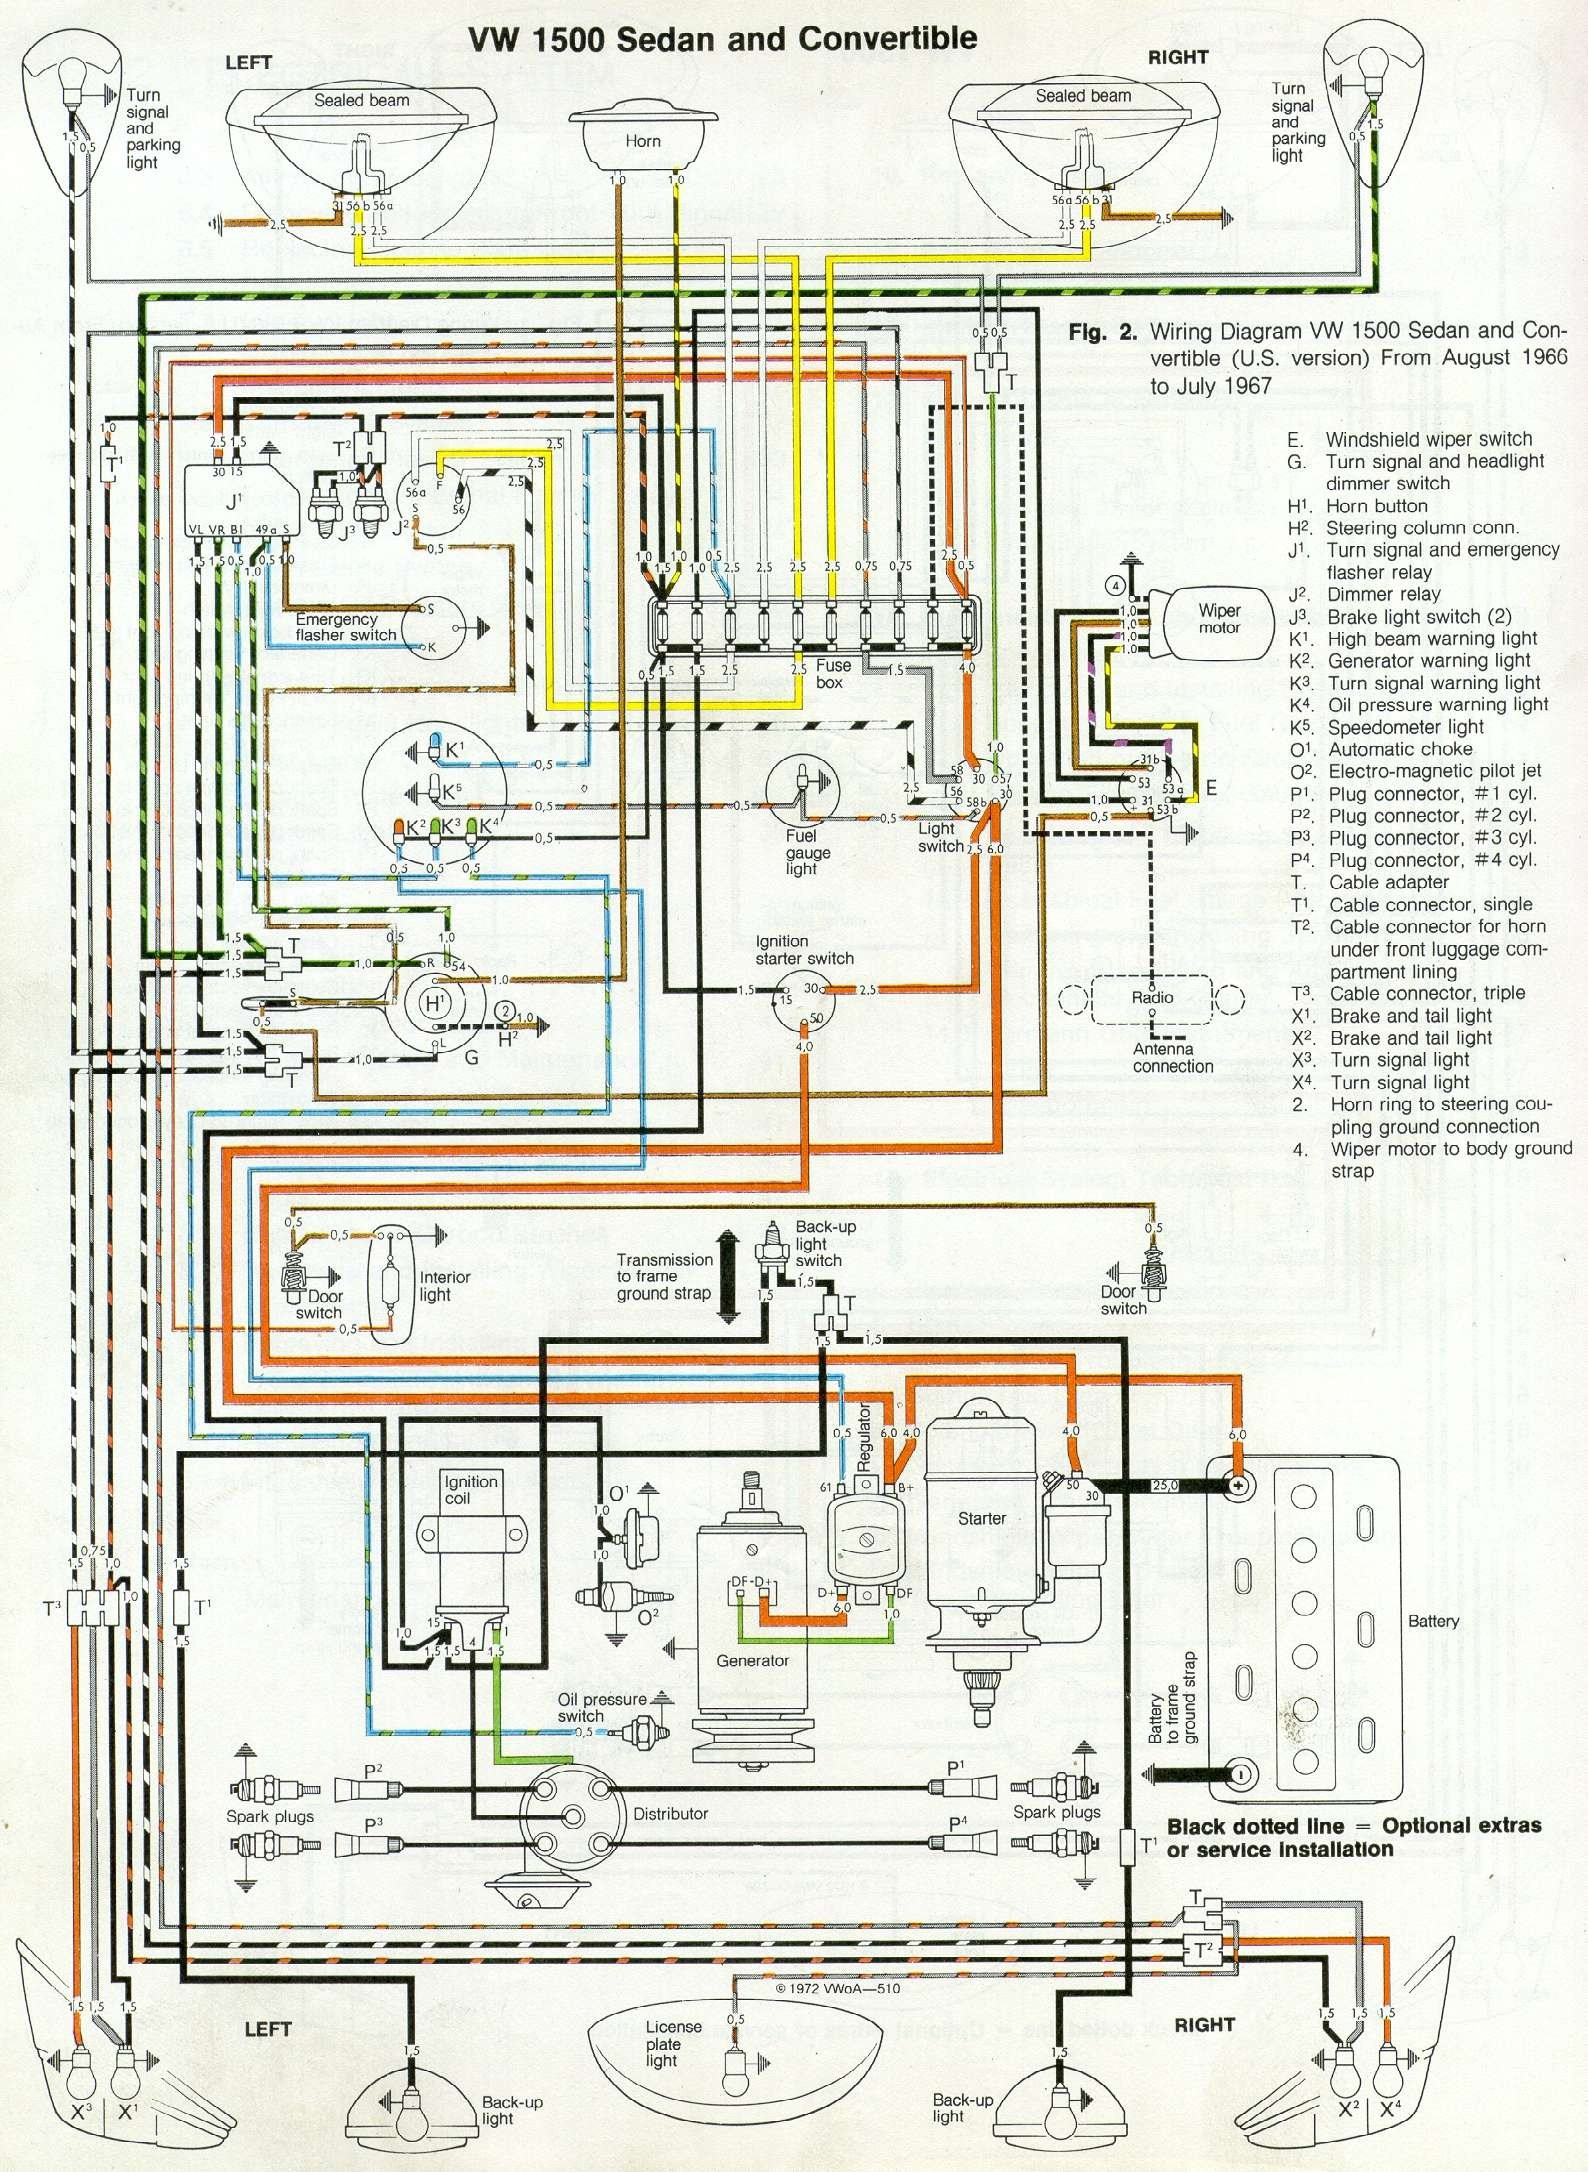 VW Beetle Wiring Digram 67 beetle wiring diagram u s version 1967 vw beetle t5 wiring diagram at soozxer.org